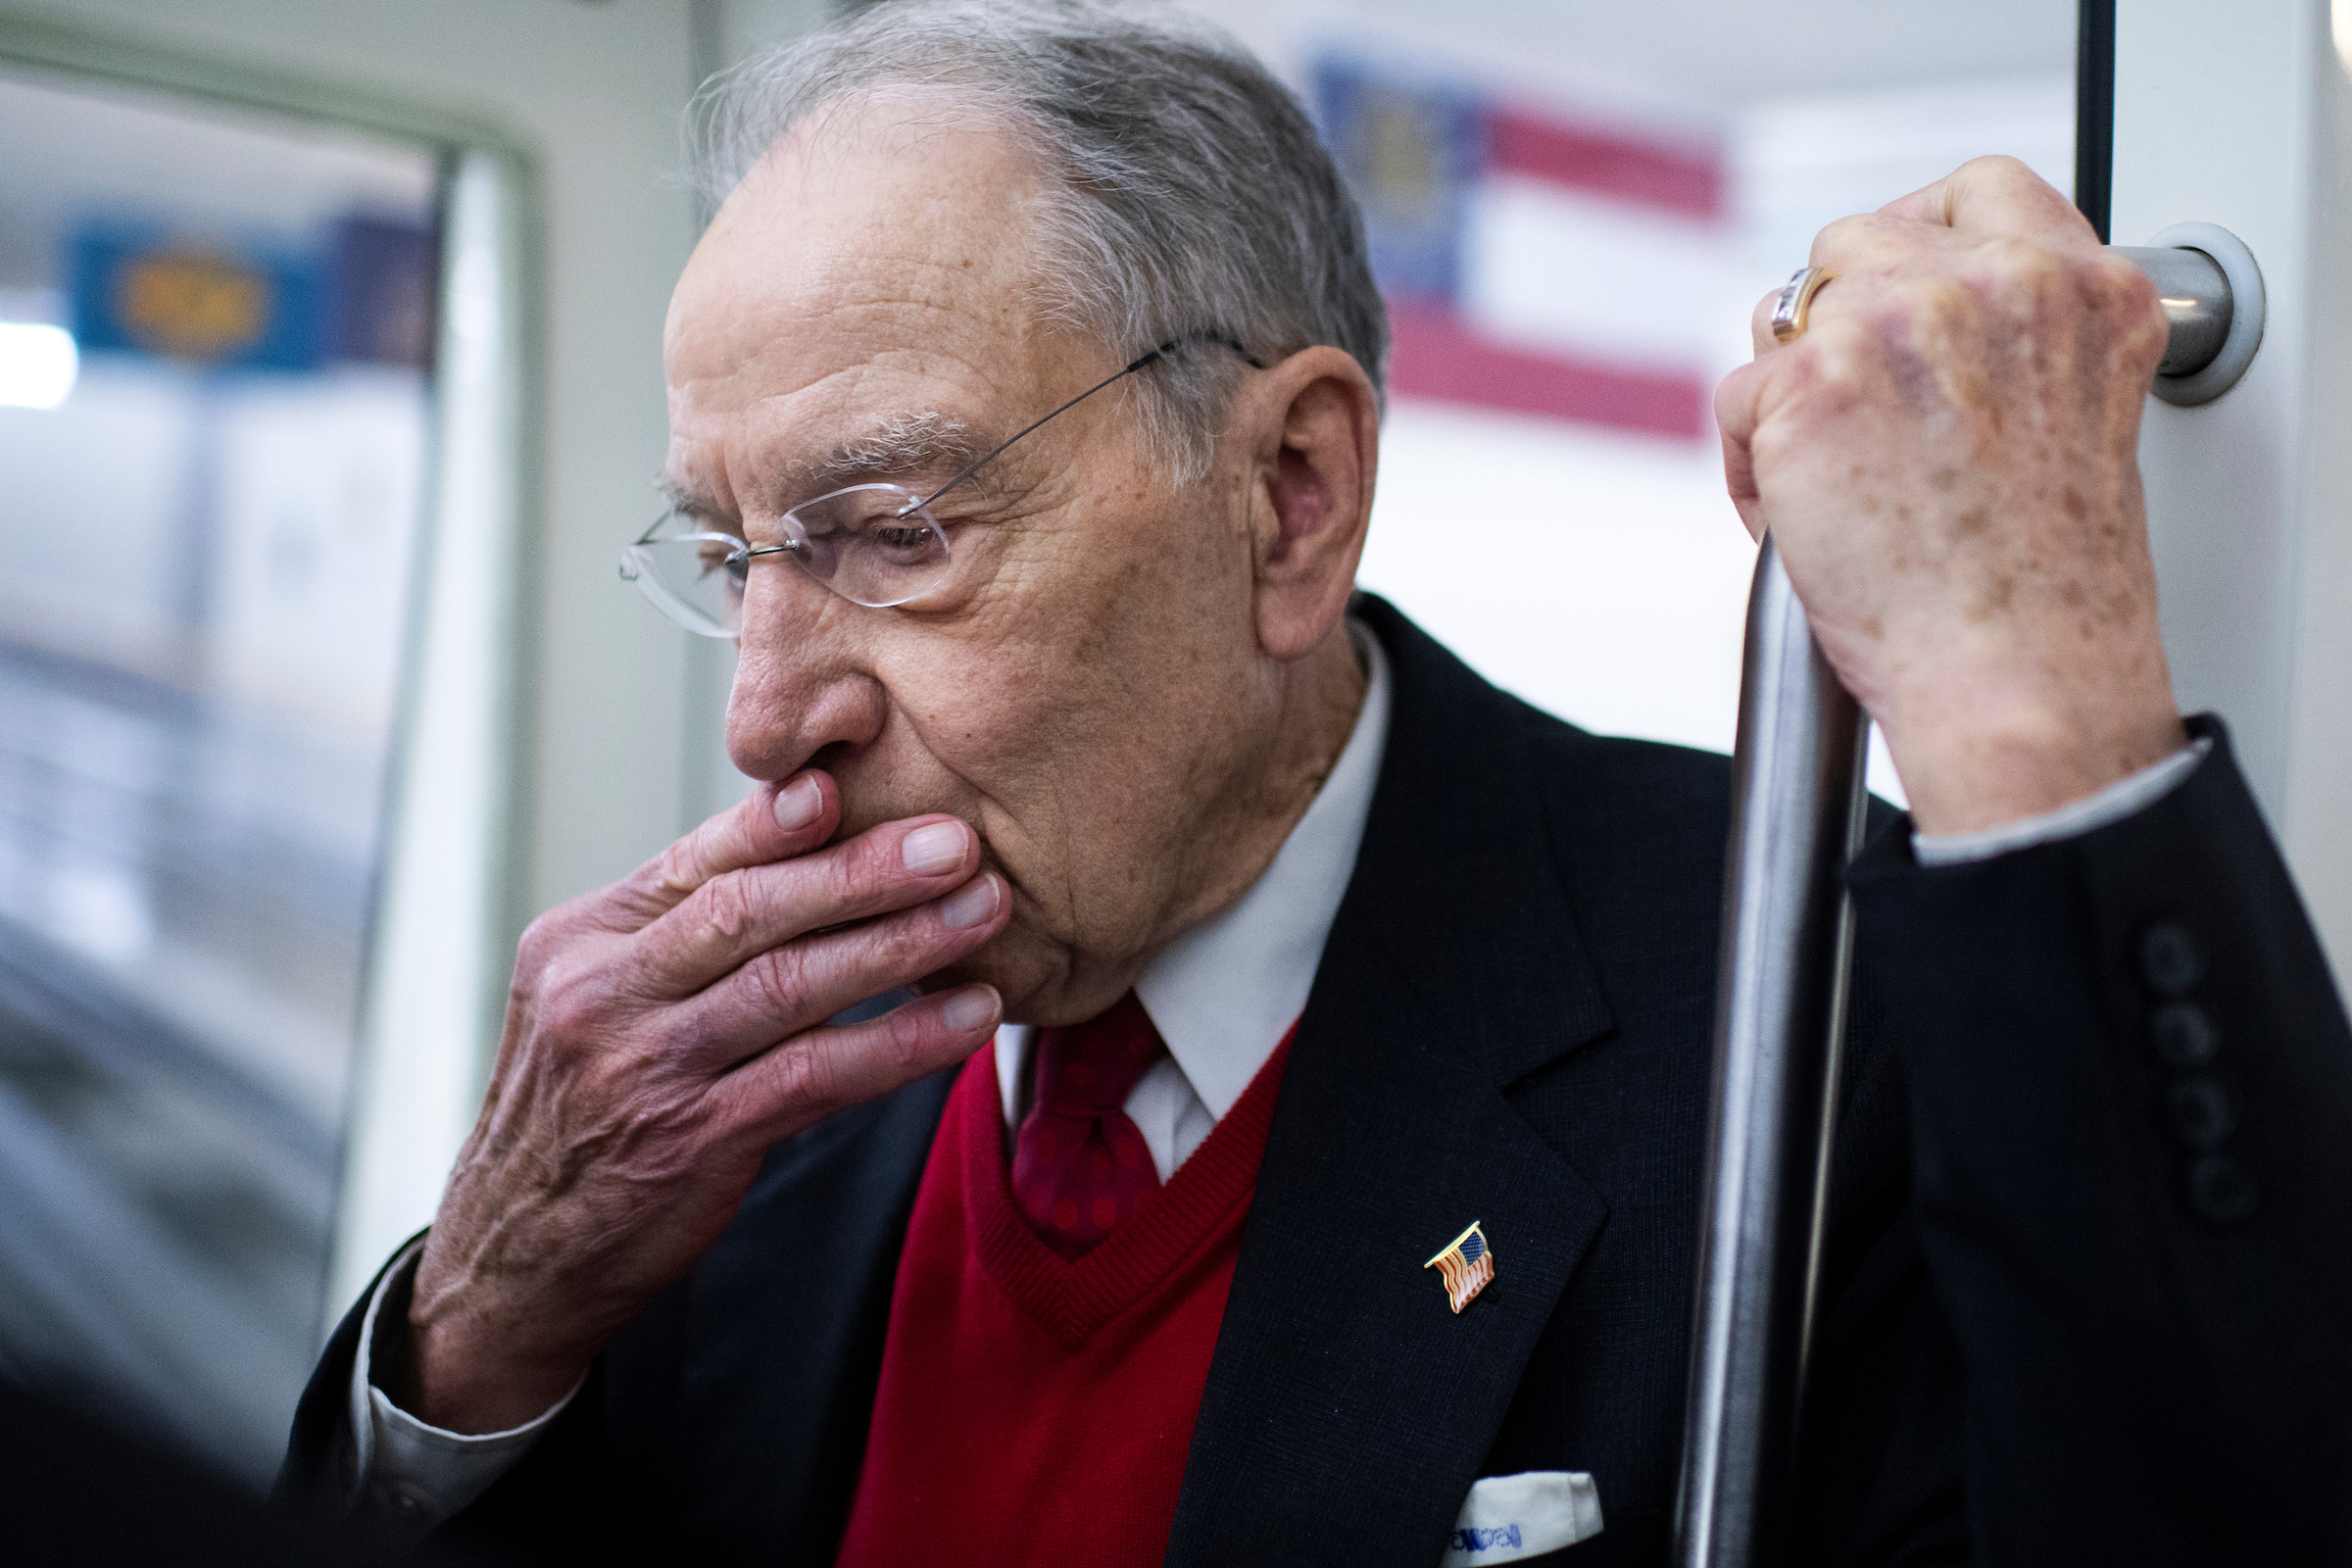 Sen. Chuck Grassley, R-Iowa, wants the USDA to use the Commodity Credit Corporation to aid the ethanol industry. (Photo By Tom Williams/CQ Roll Call)